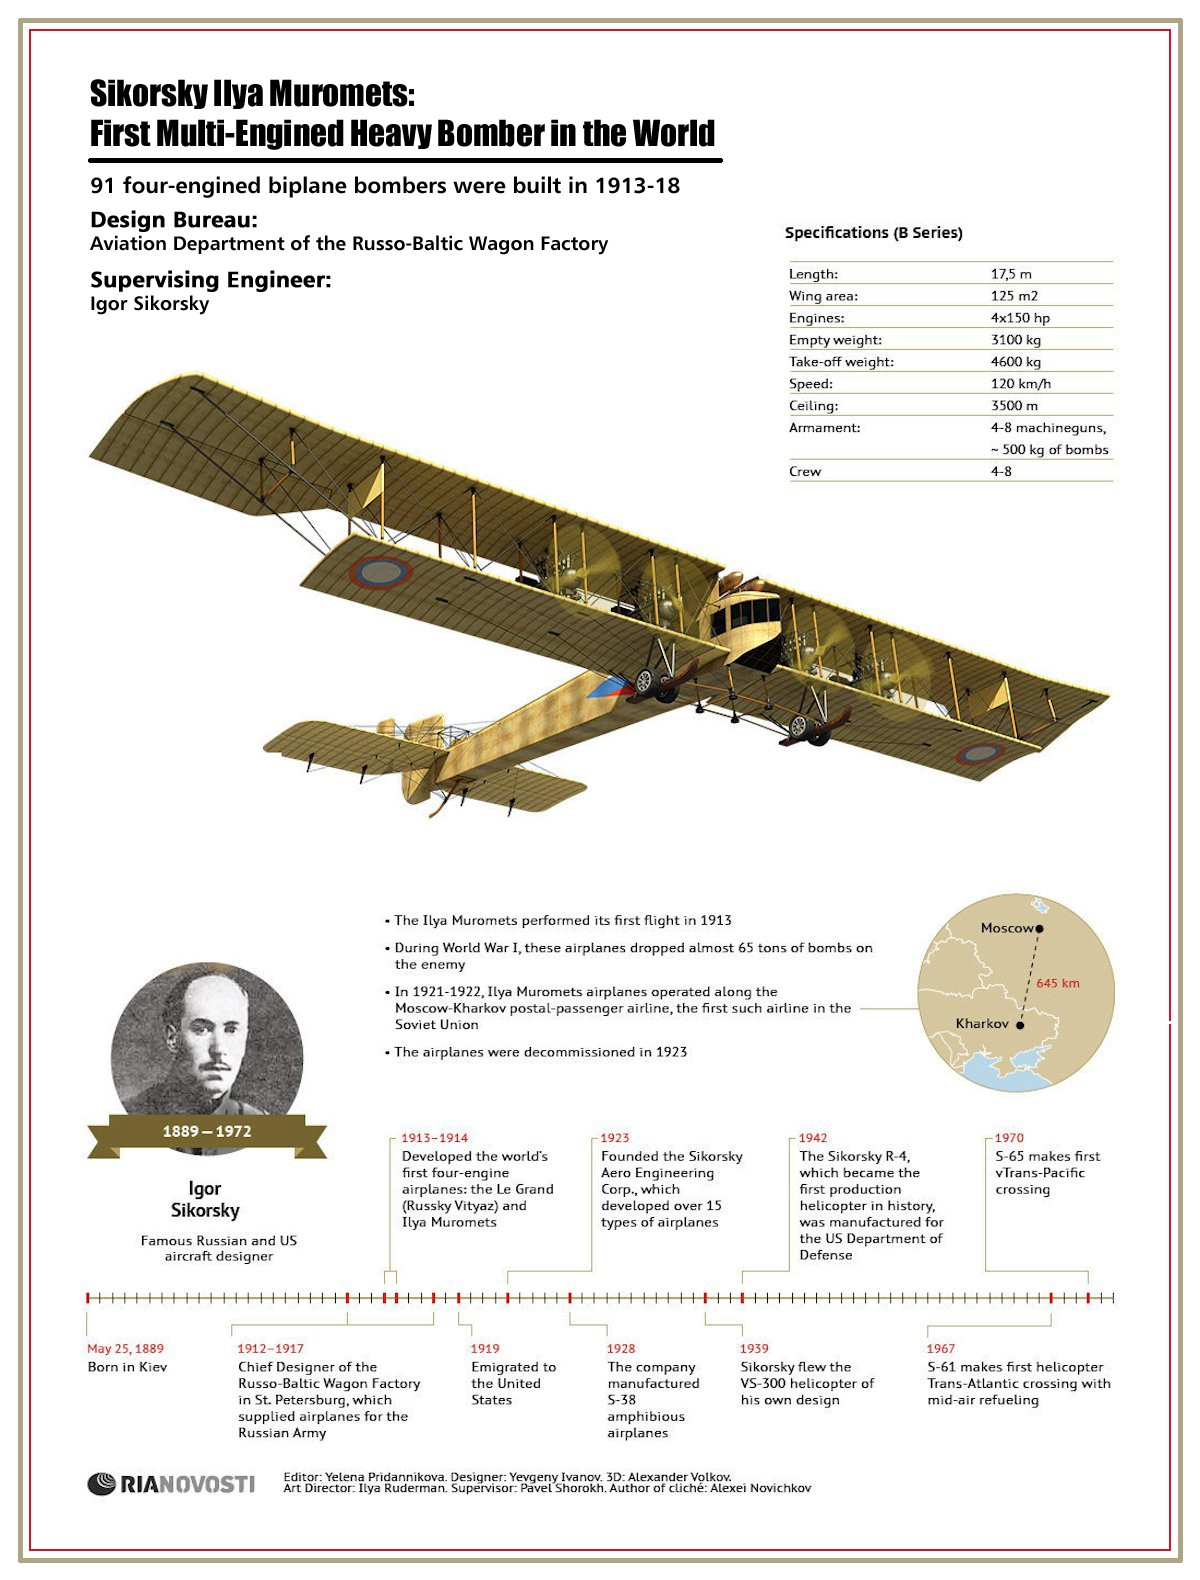 00 RIA-Novosti Infographics. Sikorsky Ilya Muromets. First Multi-Engined Heavy Bomber in the World. 2012